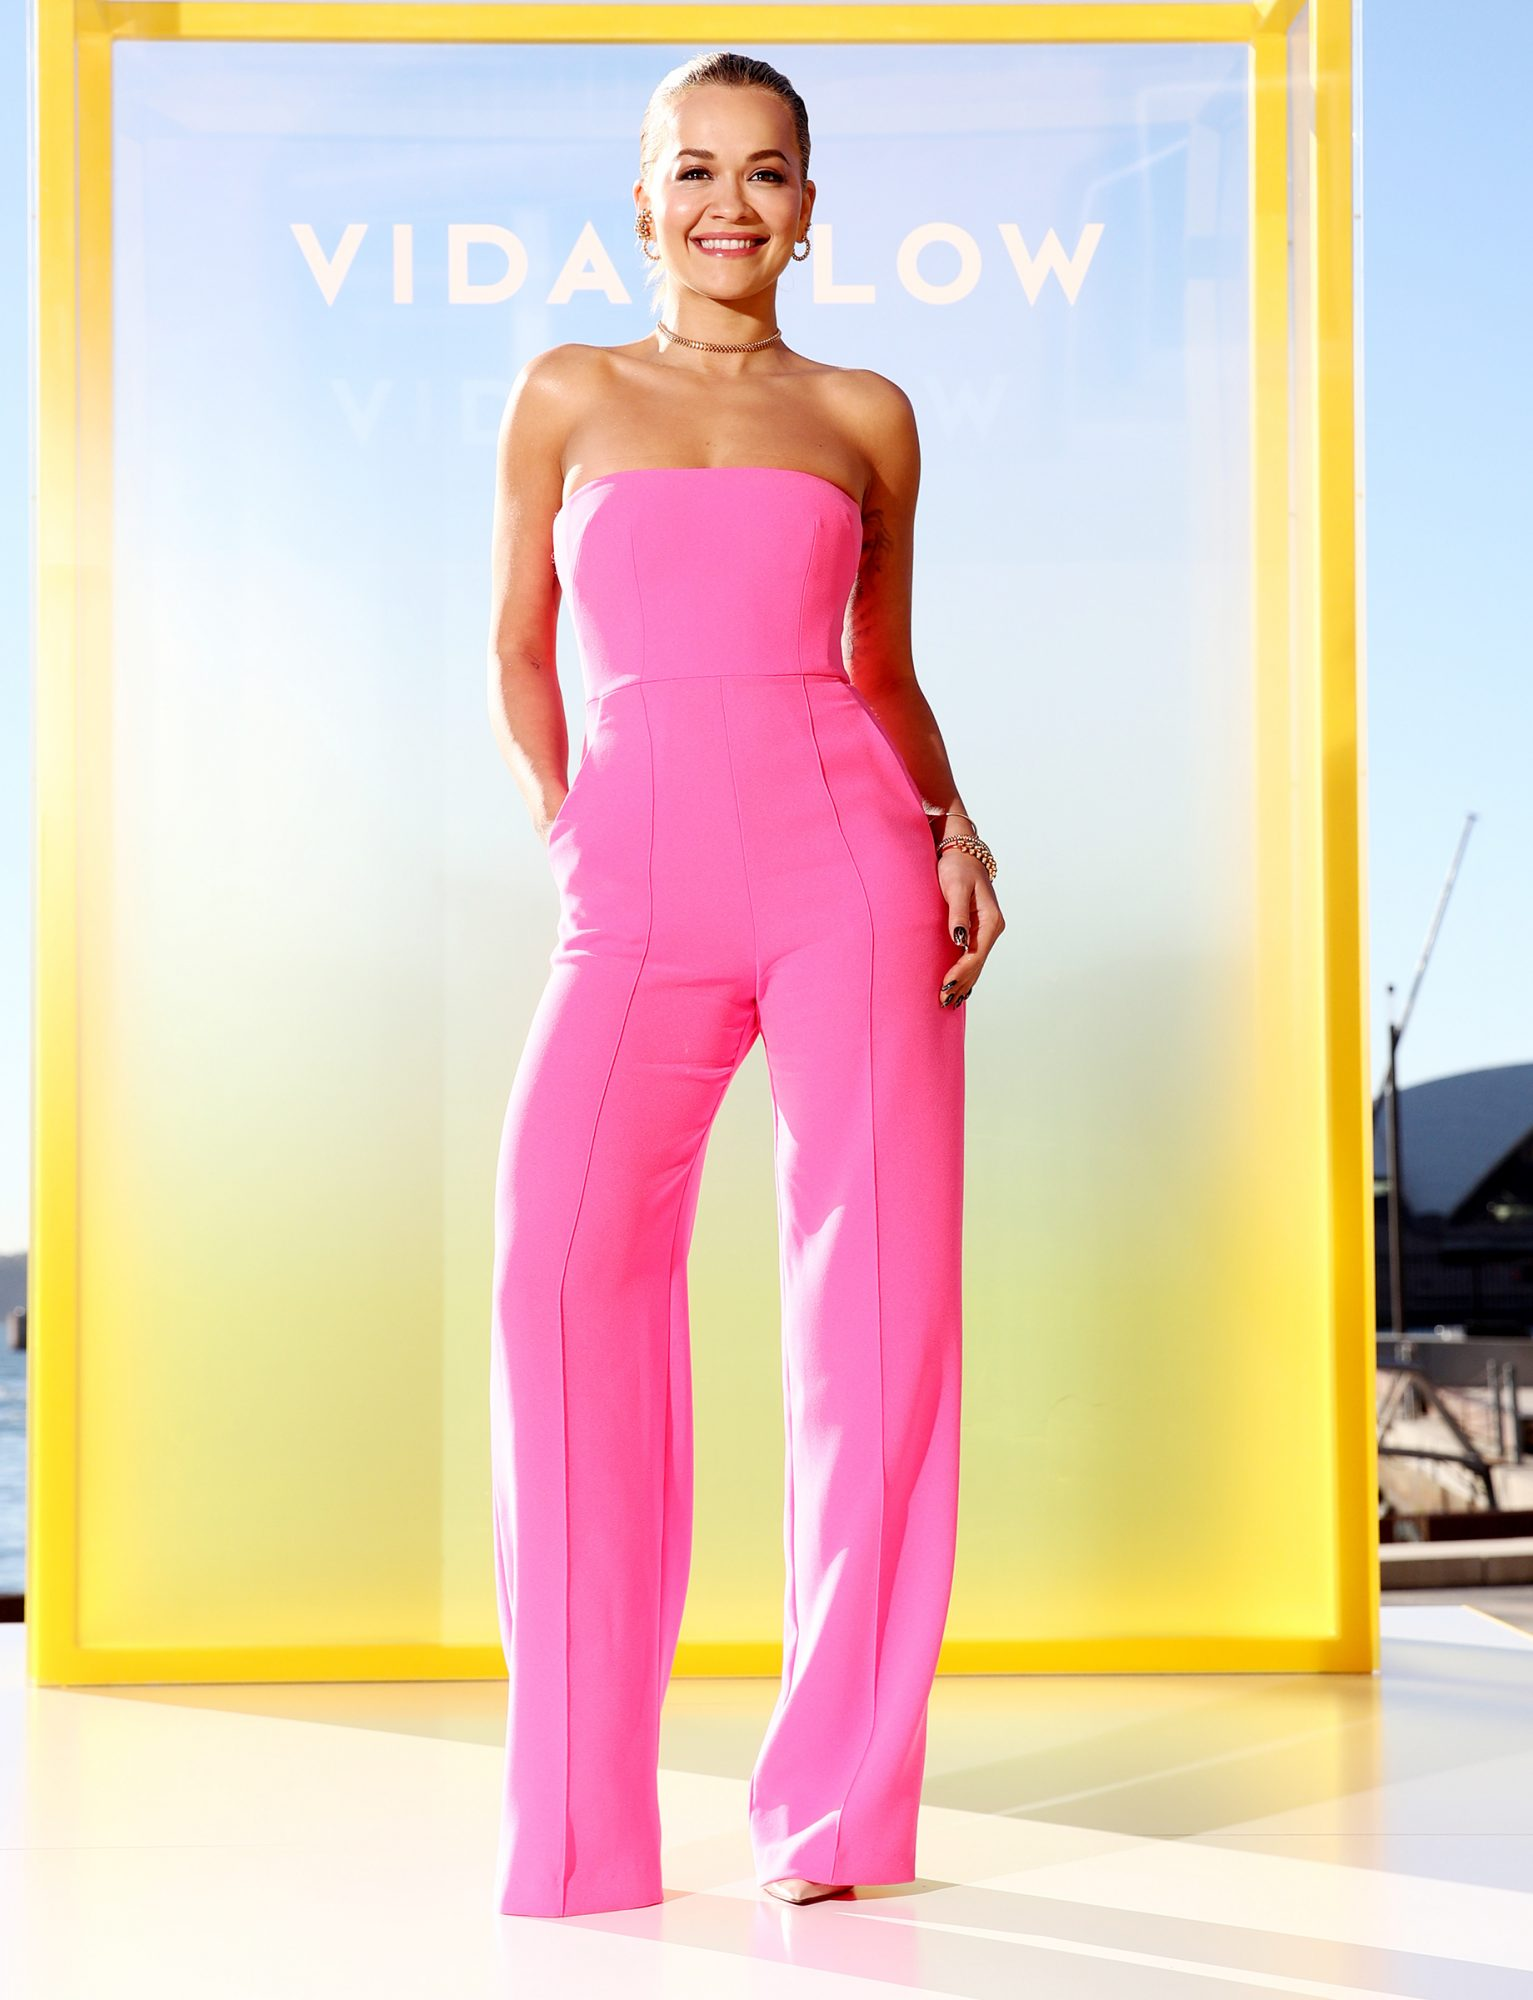 Rita Ora attends the Vide Glow global launch at Sydney Harbour on May 17, 2021 in Sydney